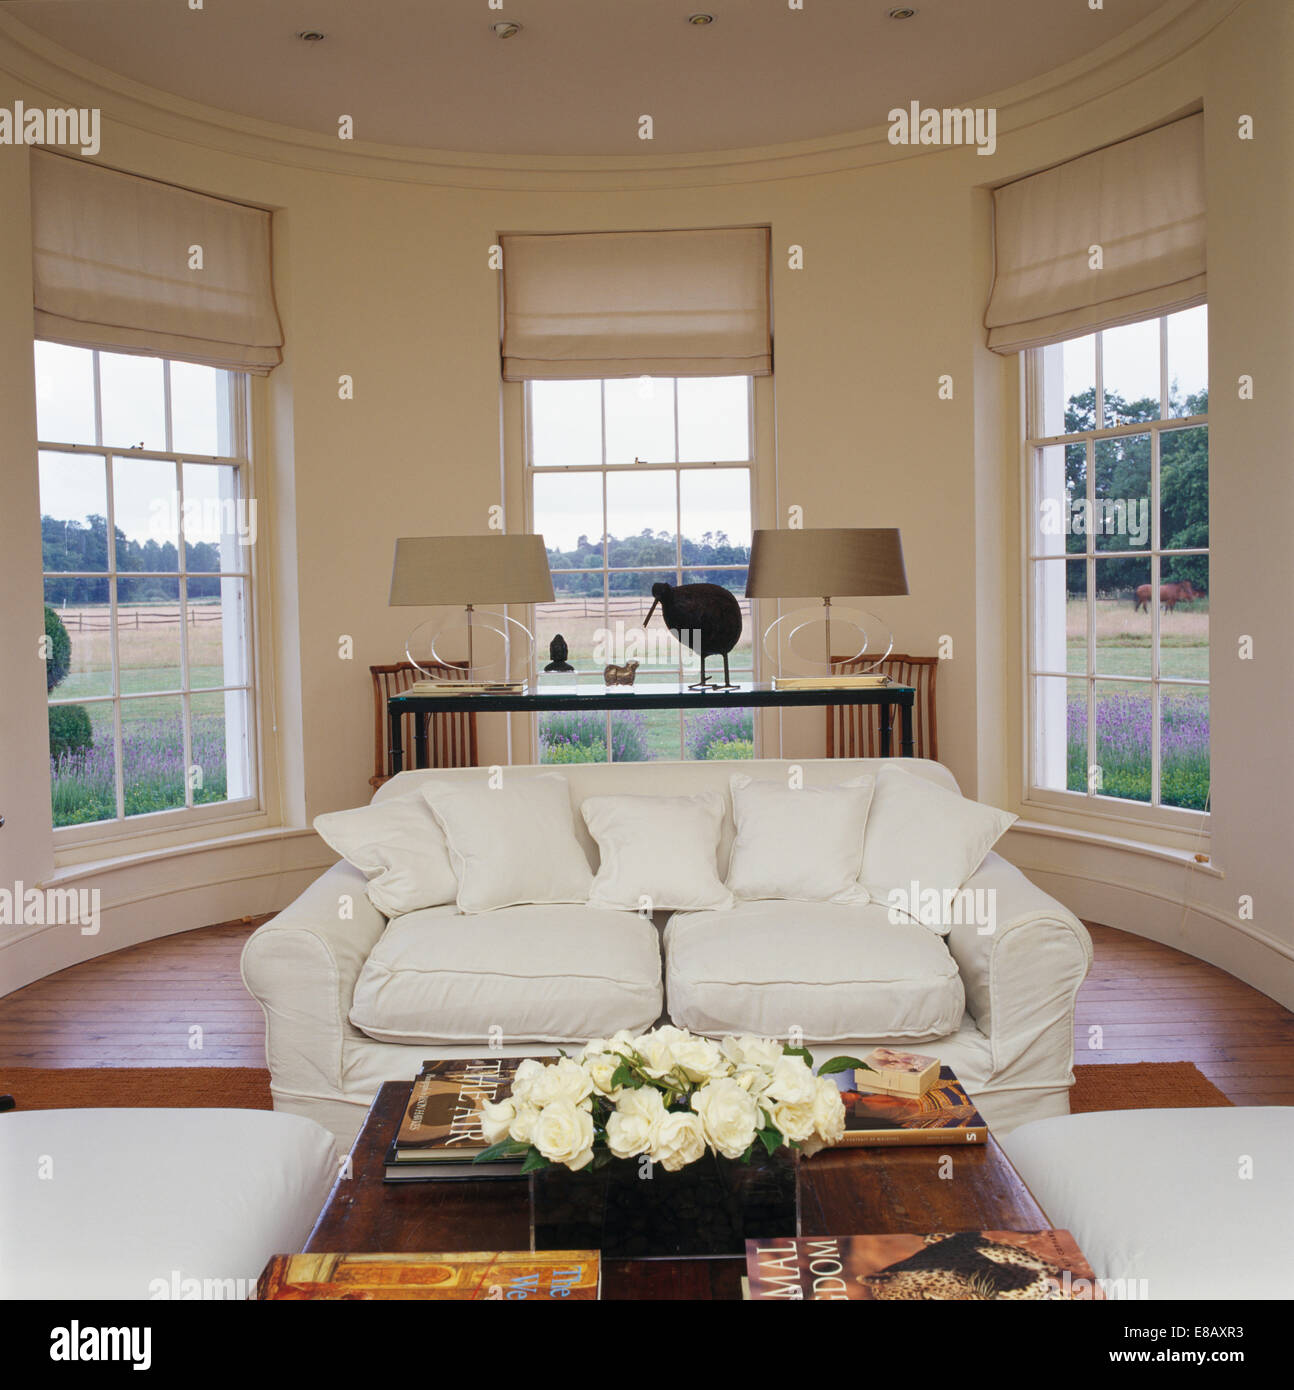 White Sofa In Front Of Large Bay Windows With White Blinds In